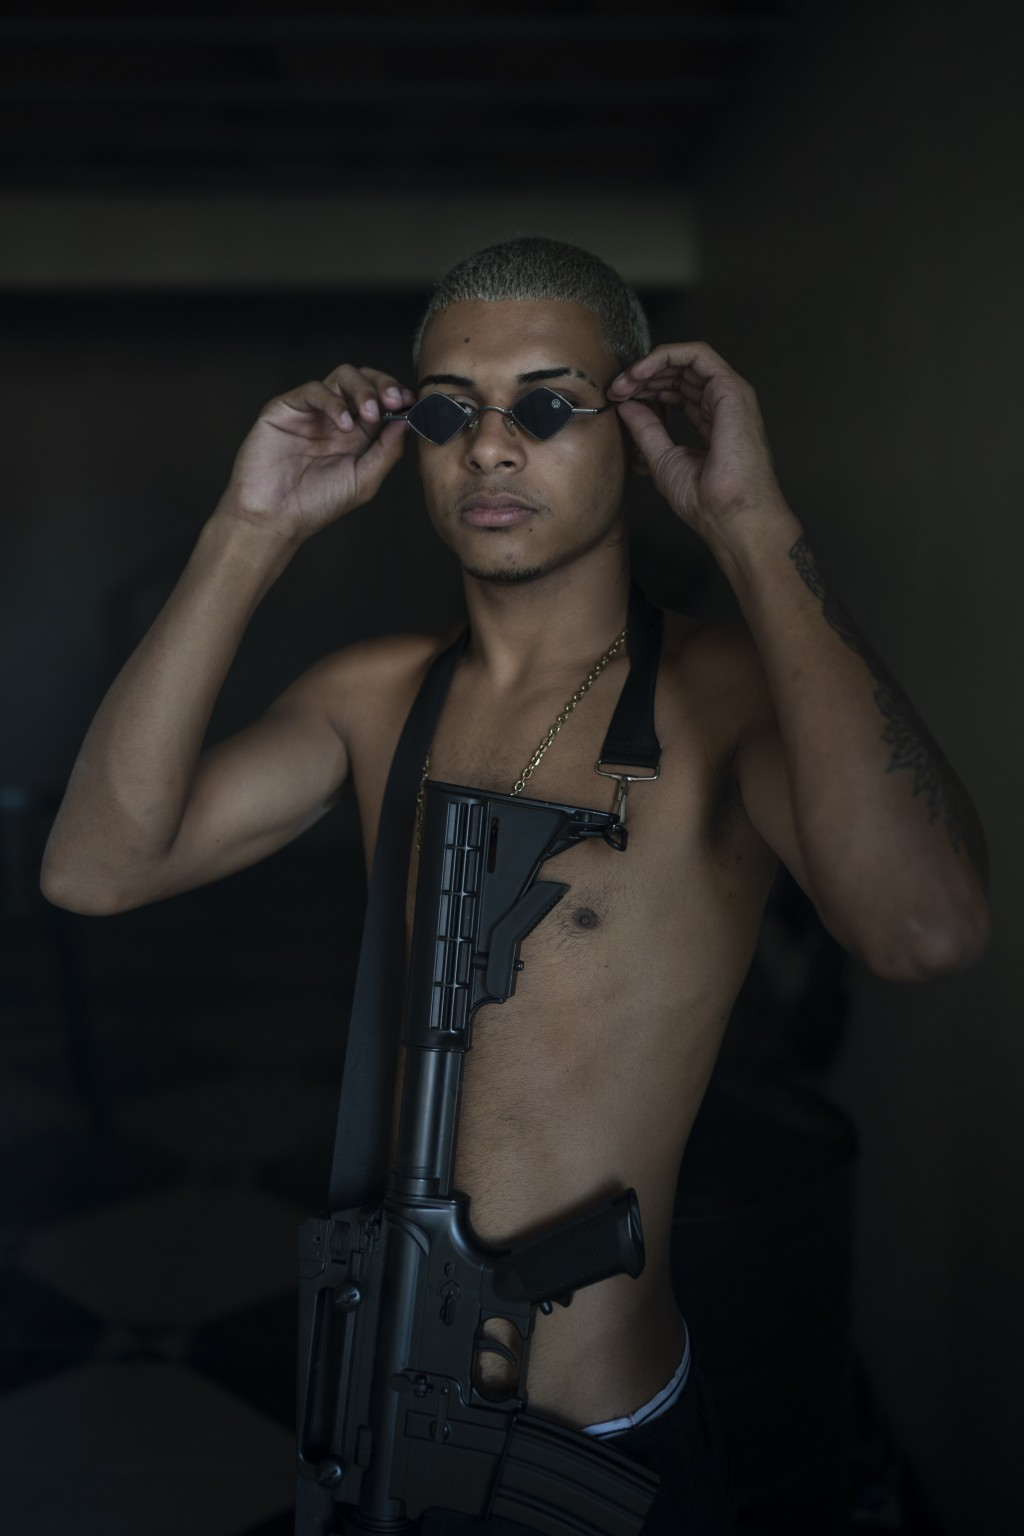 """Trap artist Filipe Toledo, known as """"Lindinho 22,""""  poses for a photo with an Airsoft gun during the recording of a 'Trap de Cria' music video in the ..."""